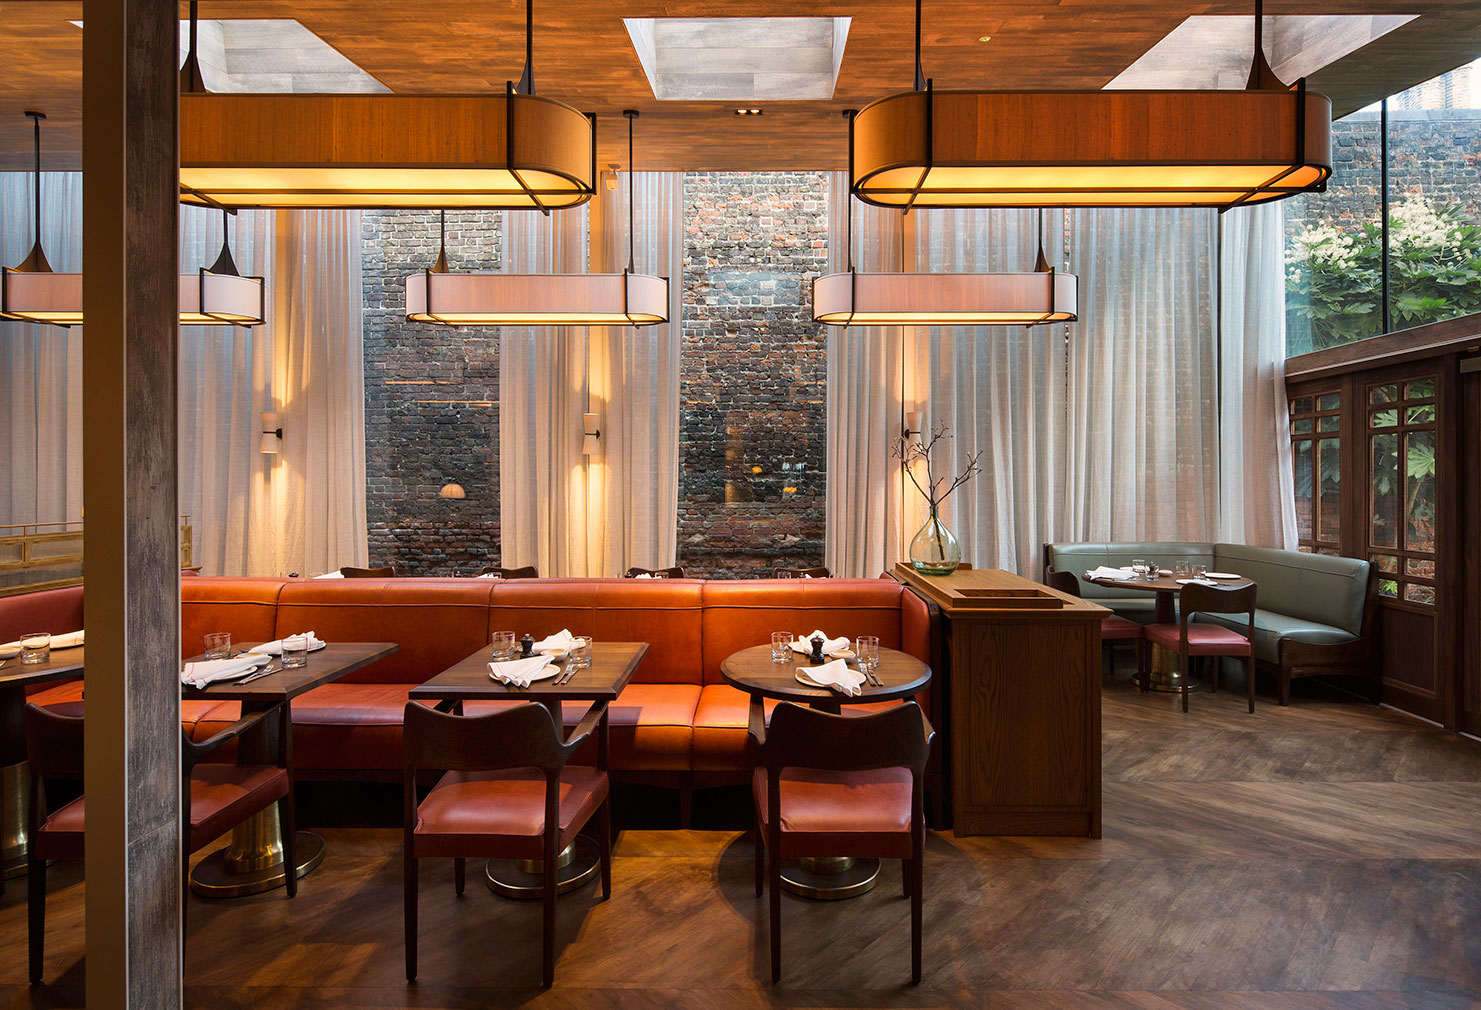 London restaurants the best new openings spaces